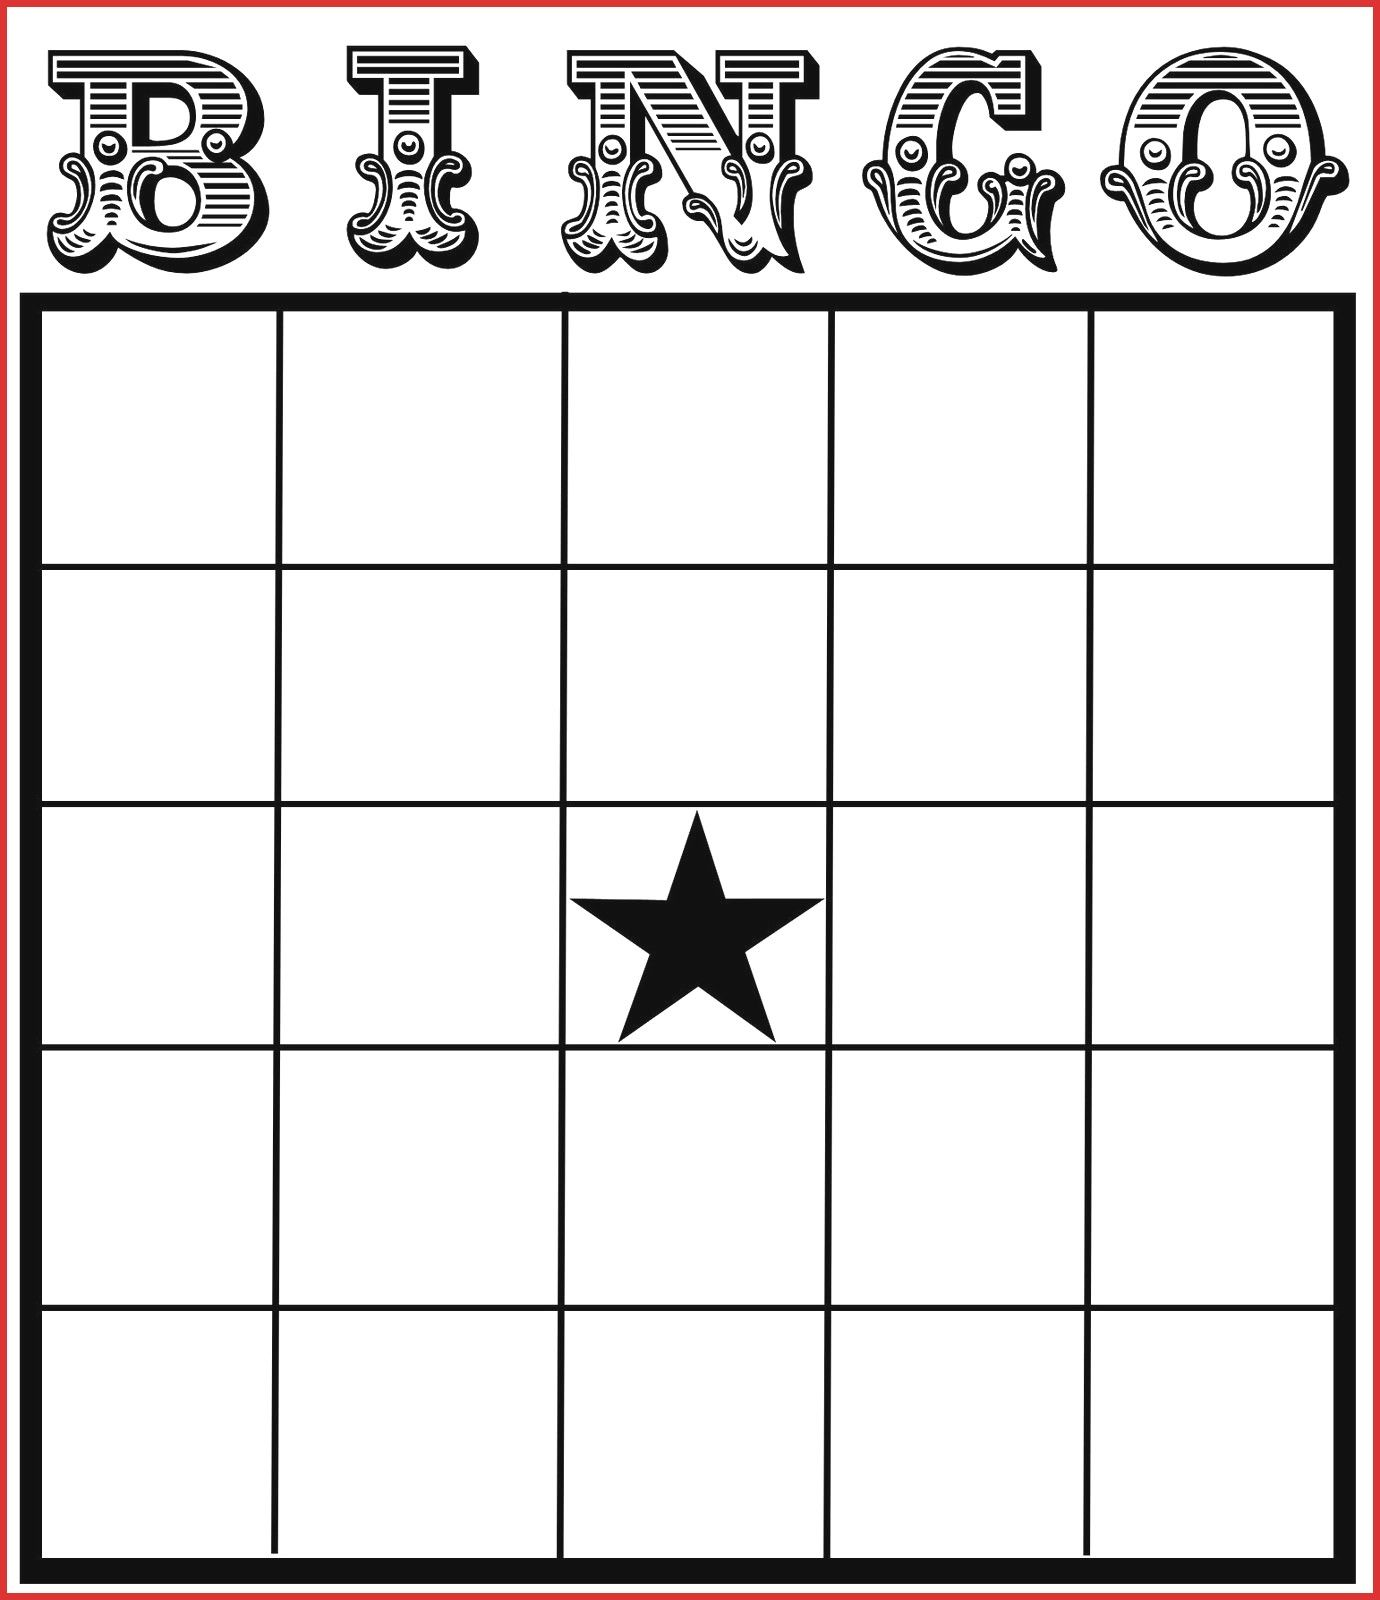 The Marvellous Fresh Blank Card Template Leave Latter Intended For Blank Bingo Card Template Free Printable Bingo Cards Free Bingo Cards Bingo Card Template